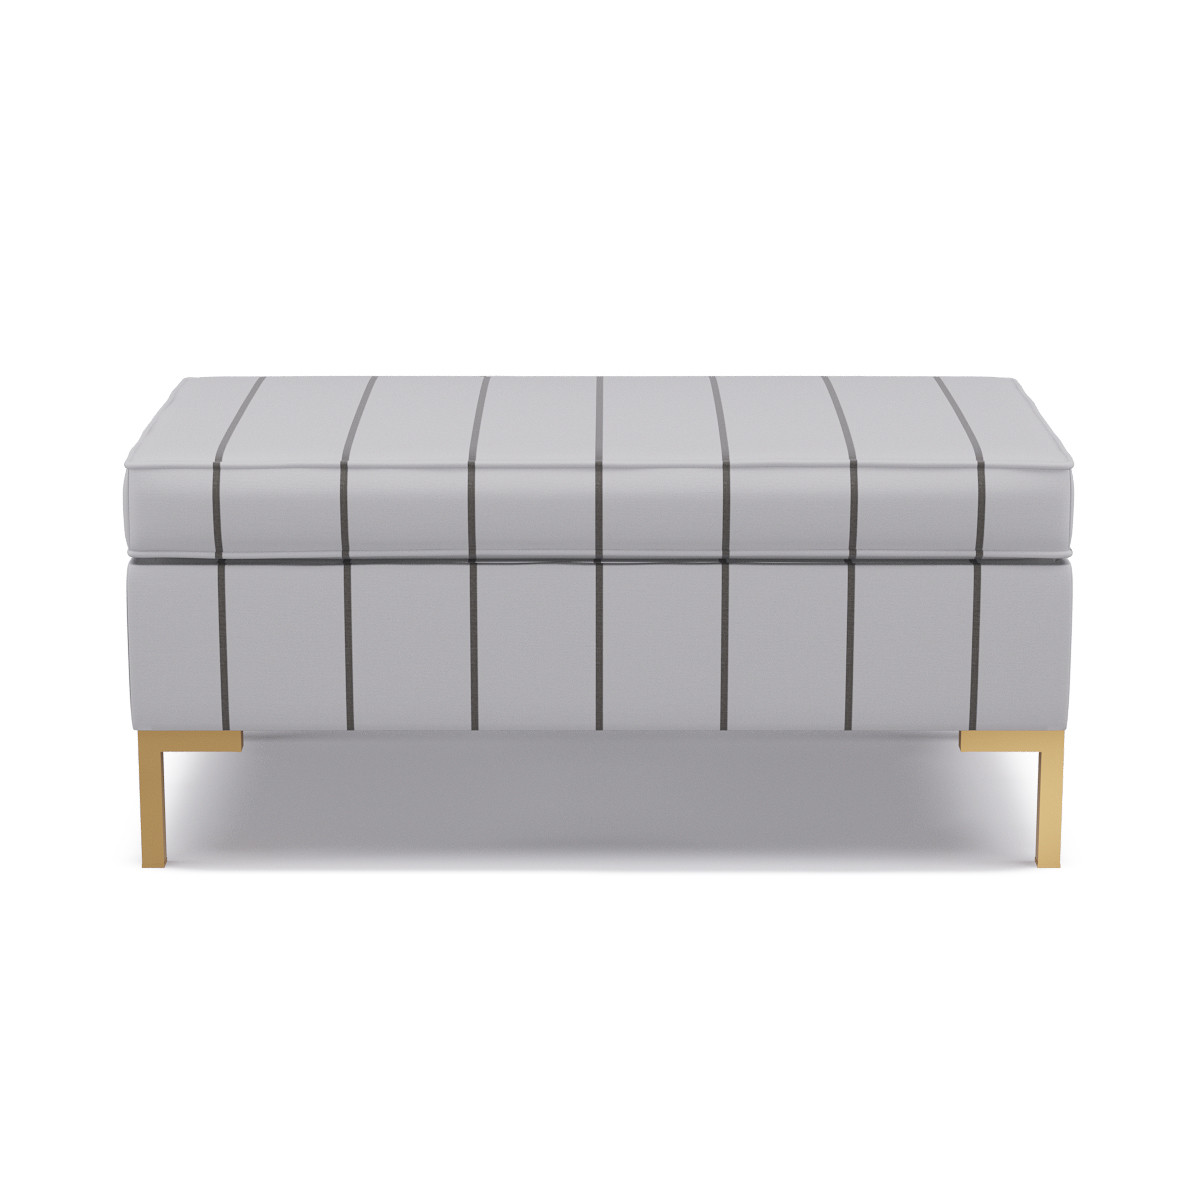 Miraculous Modern Bench Stripe In Ink Pabps2019 Chair Design Images Pabps2019Com